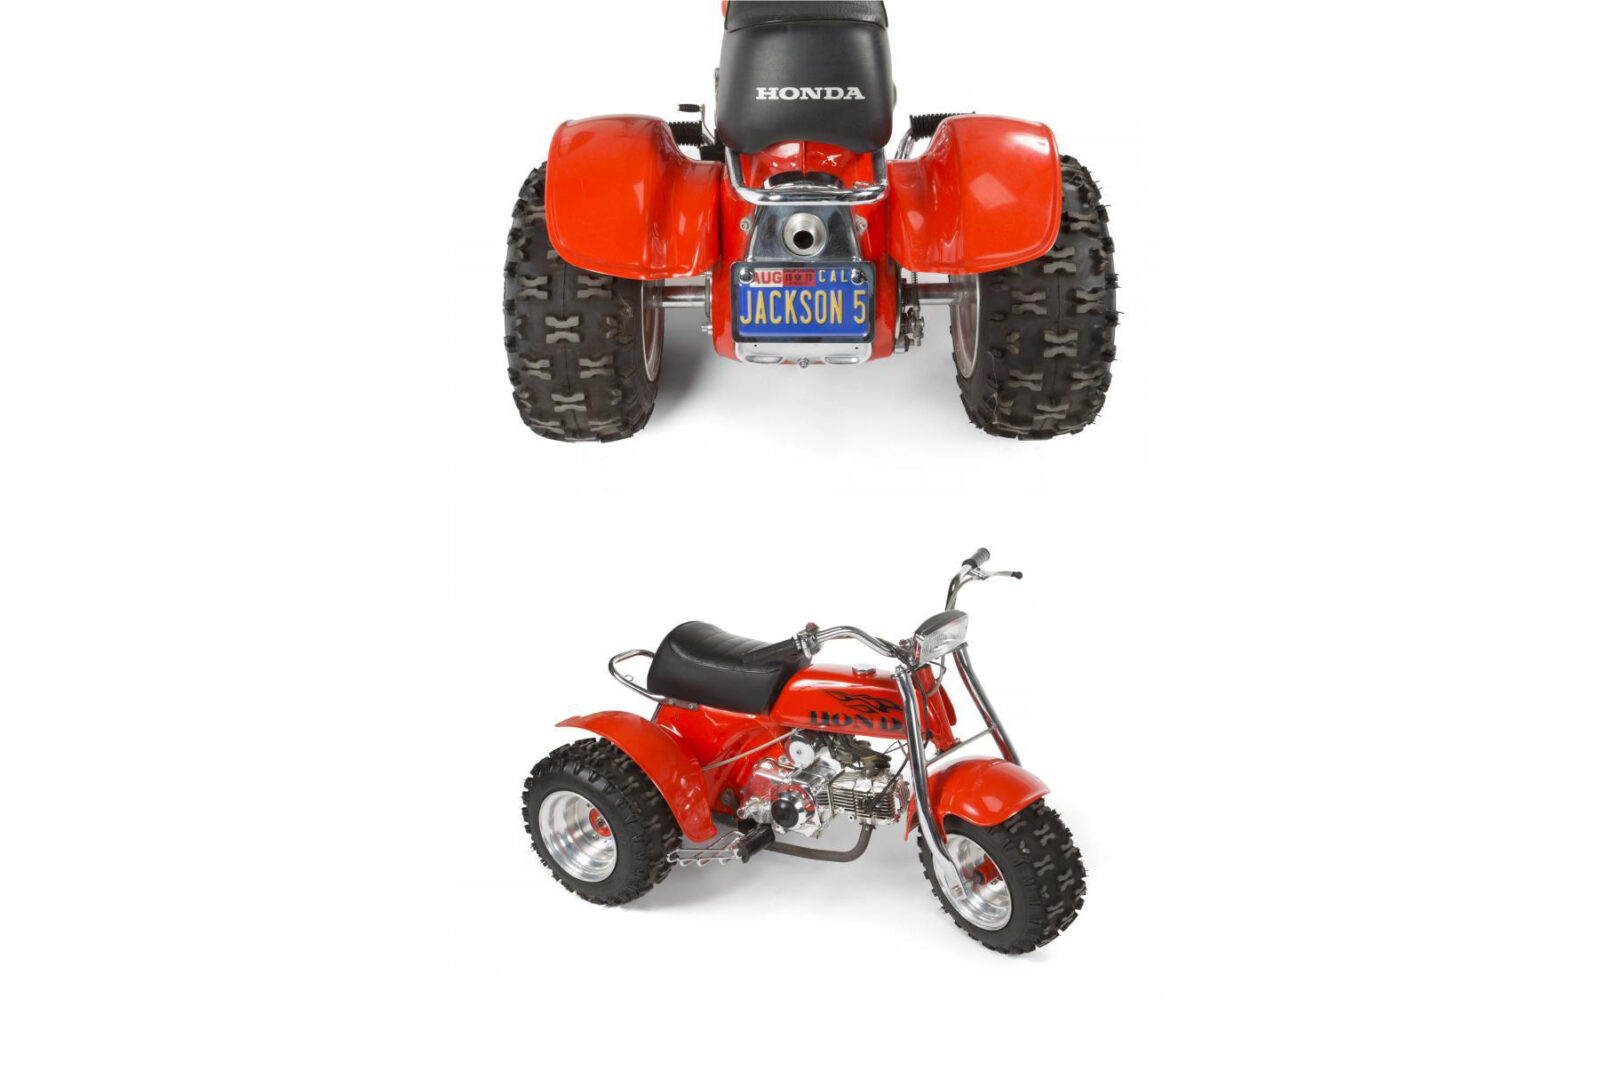 Jackson 5 Honda ATC70 Three Wheeler